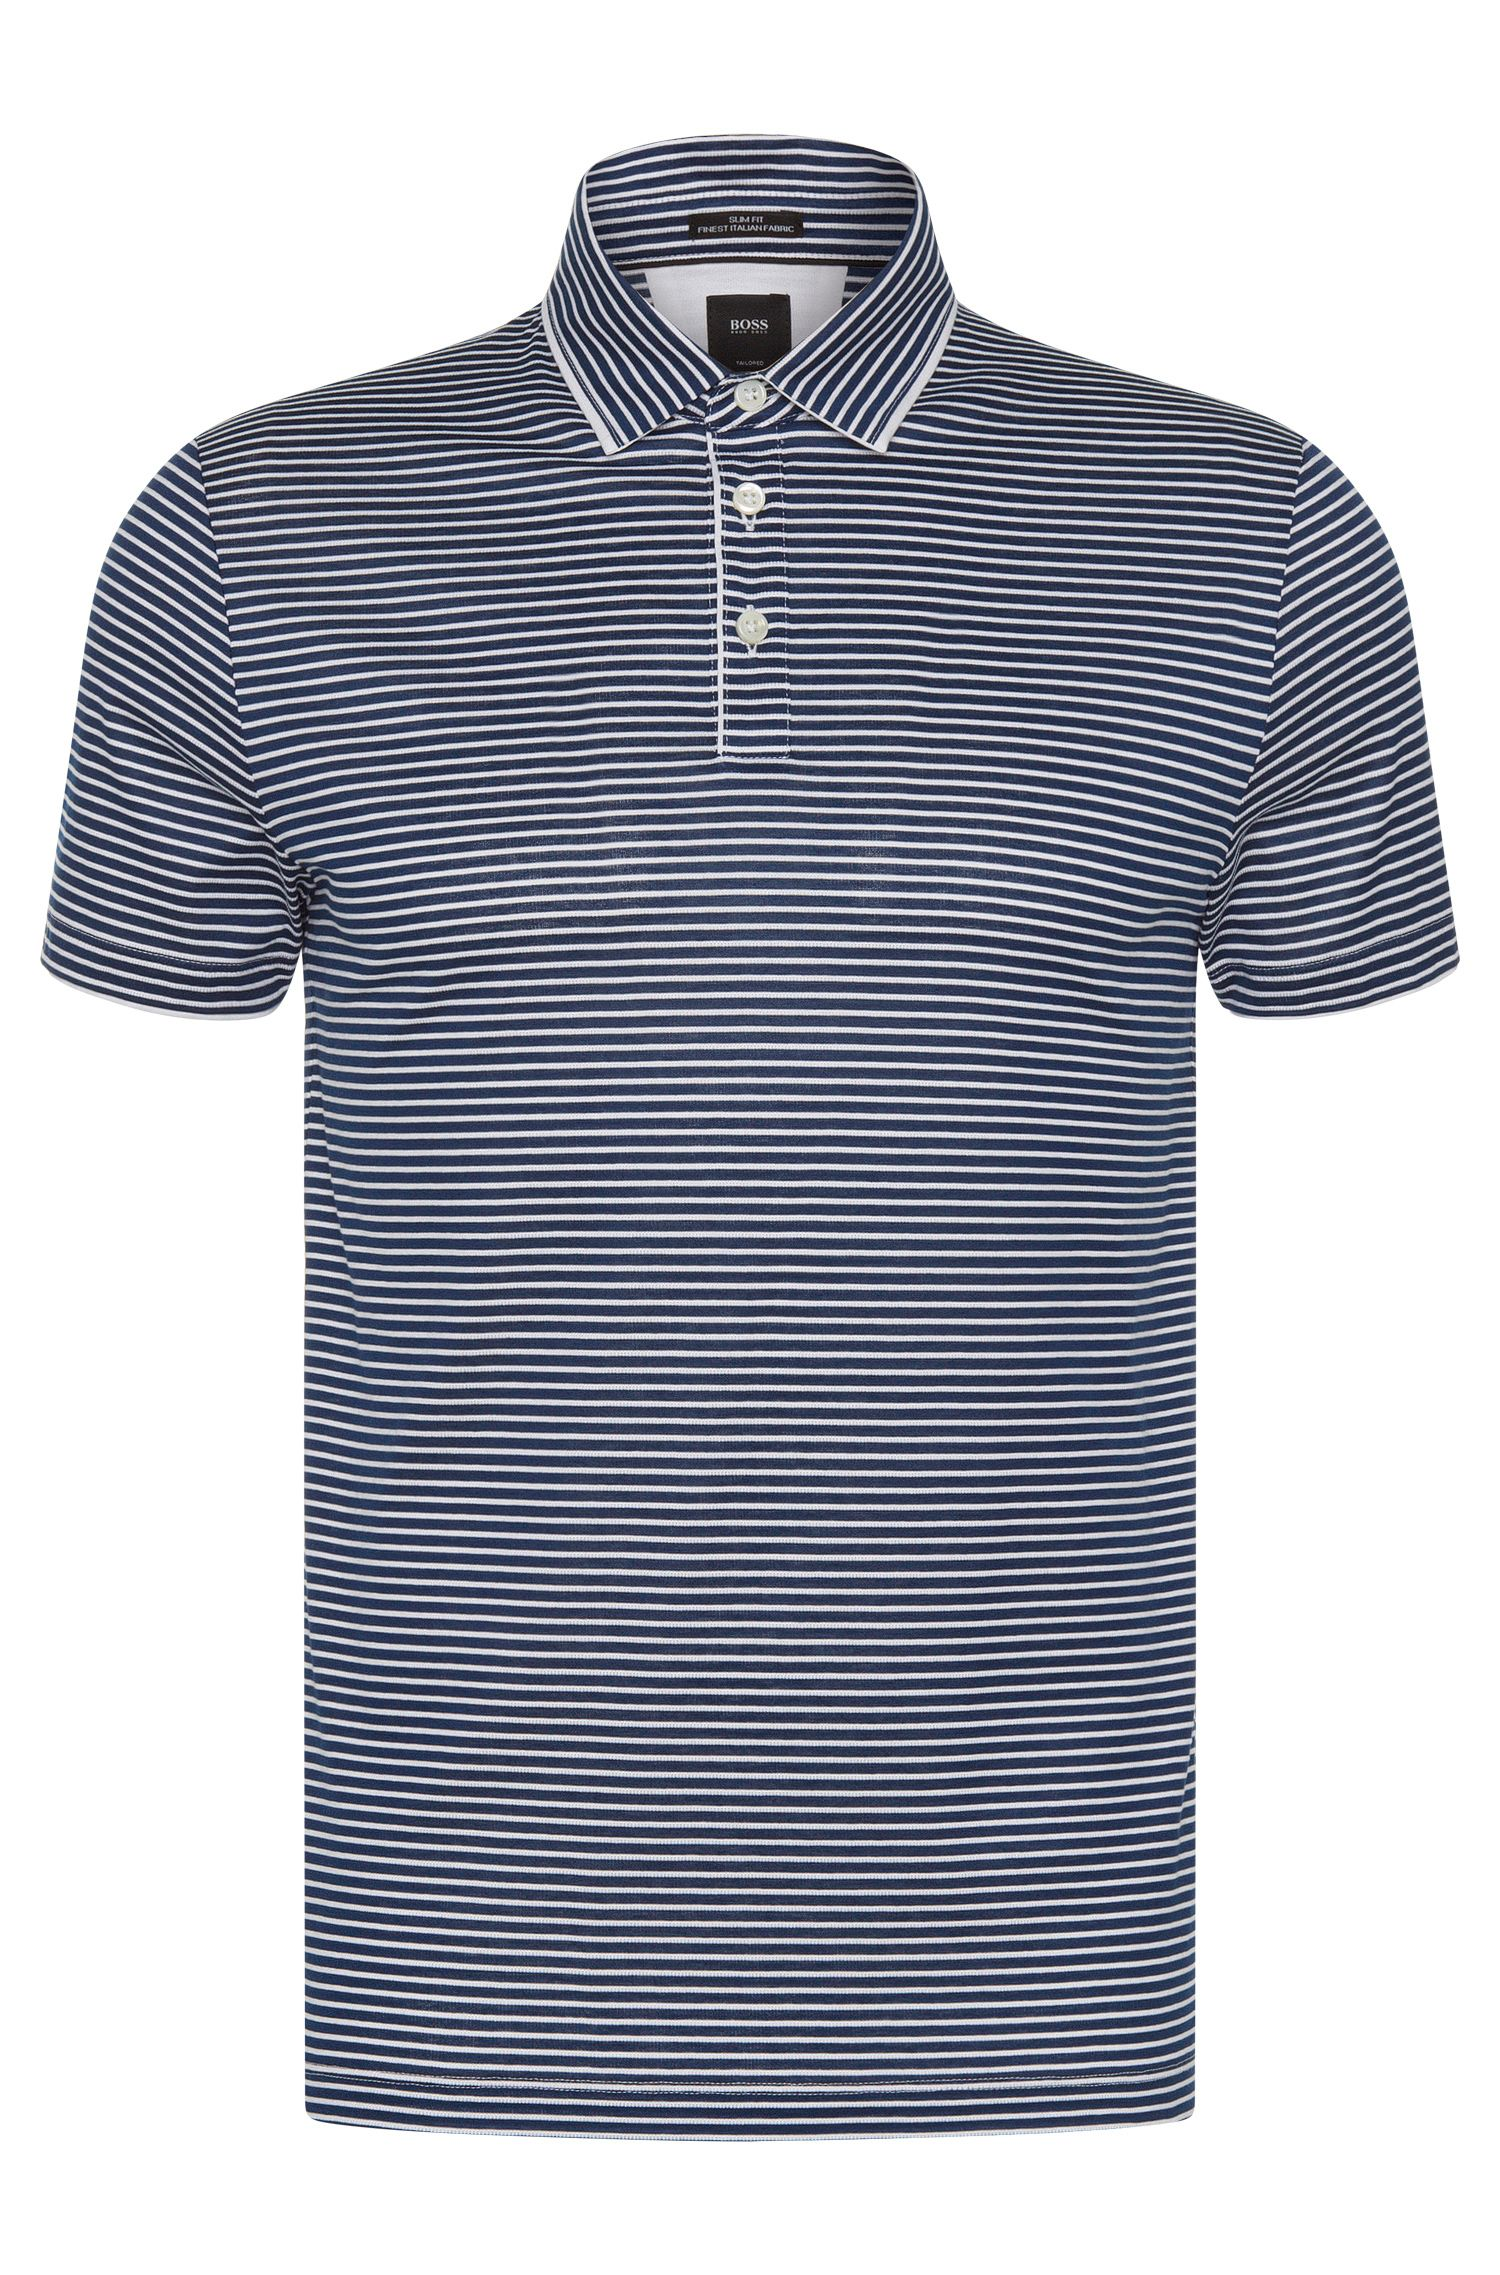 Italian Cotton Polo Shirt, Slim Fit | T-Pryde